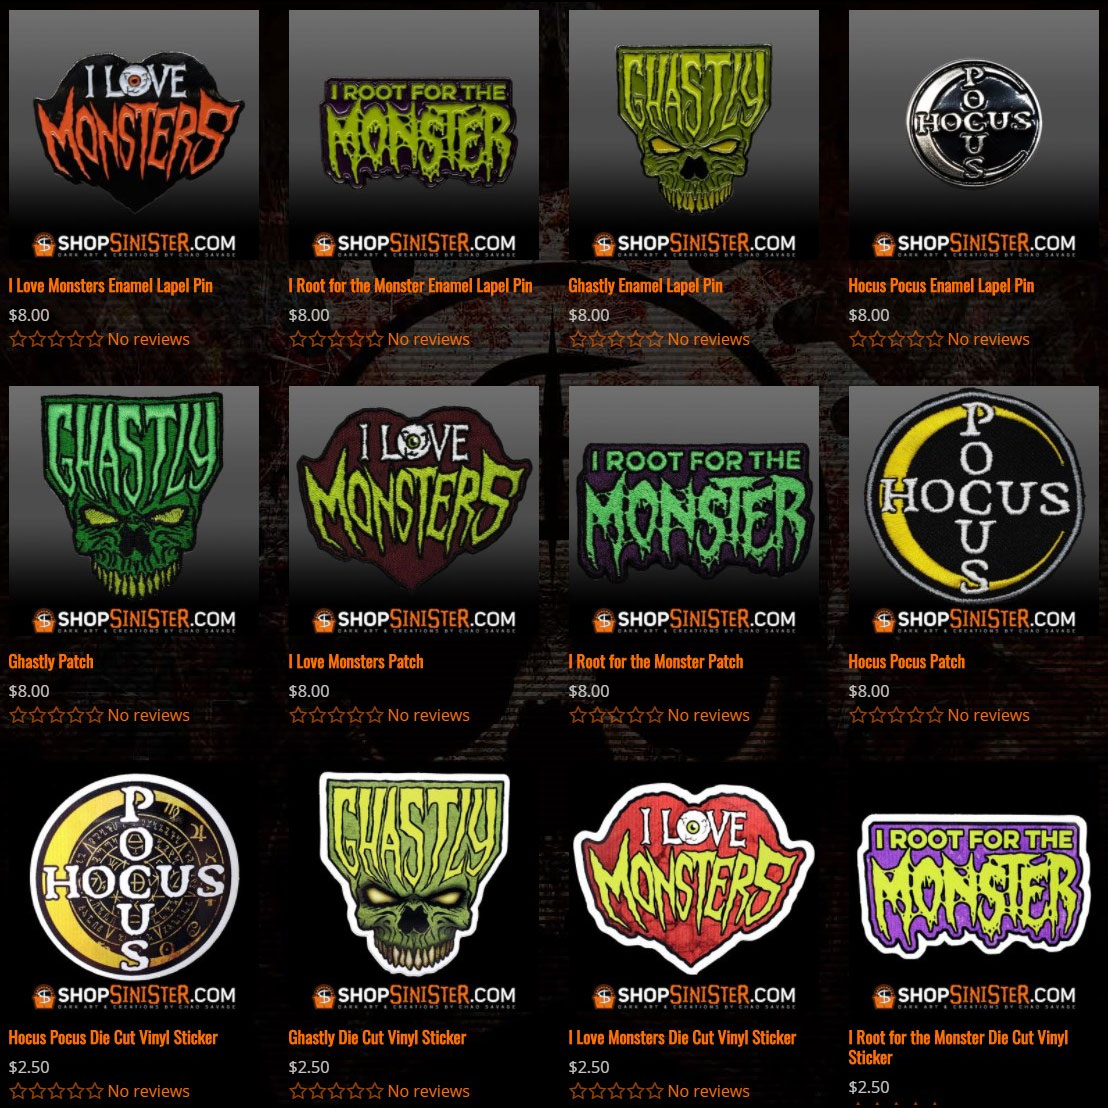 New Pins, Patches and Stickers at ShopSinister.com